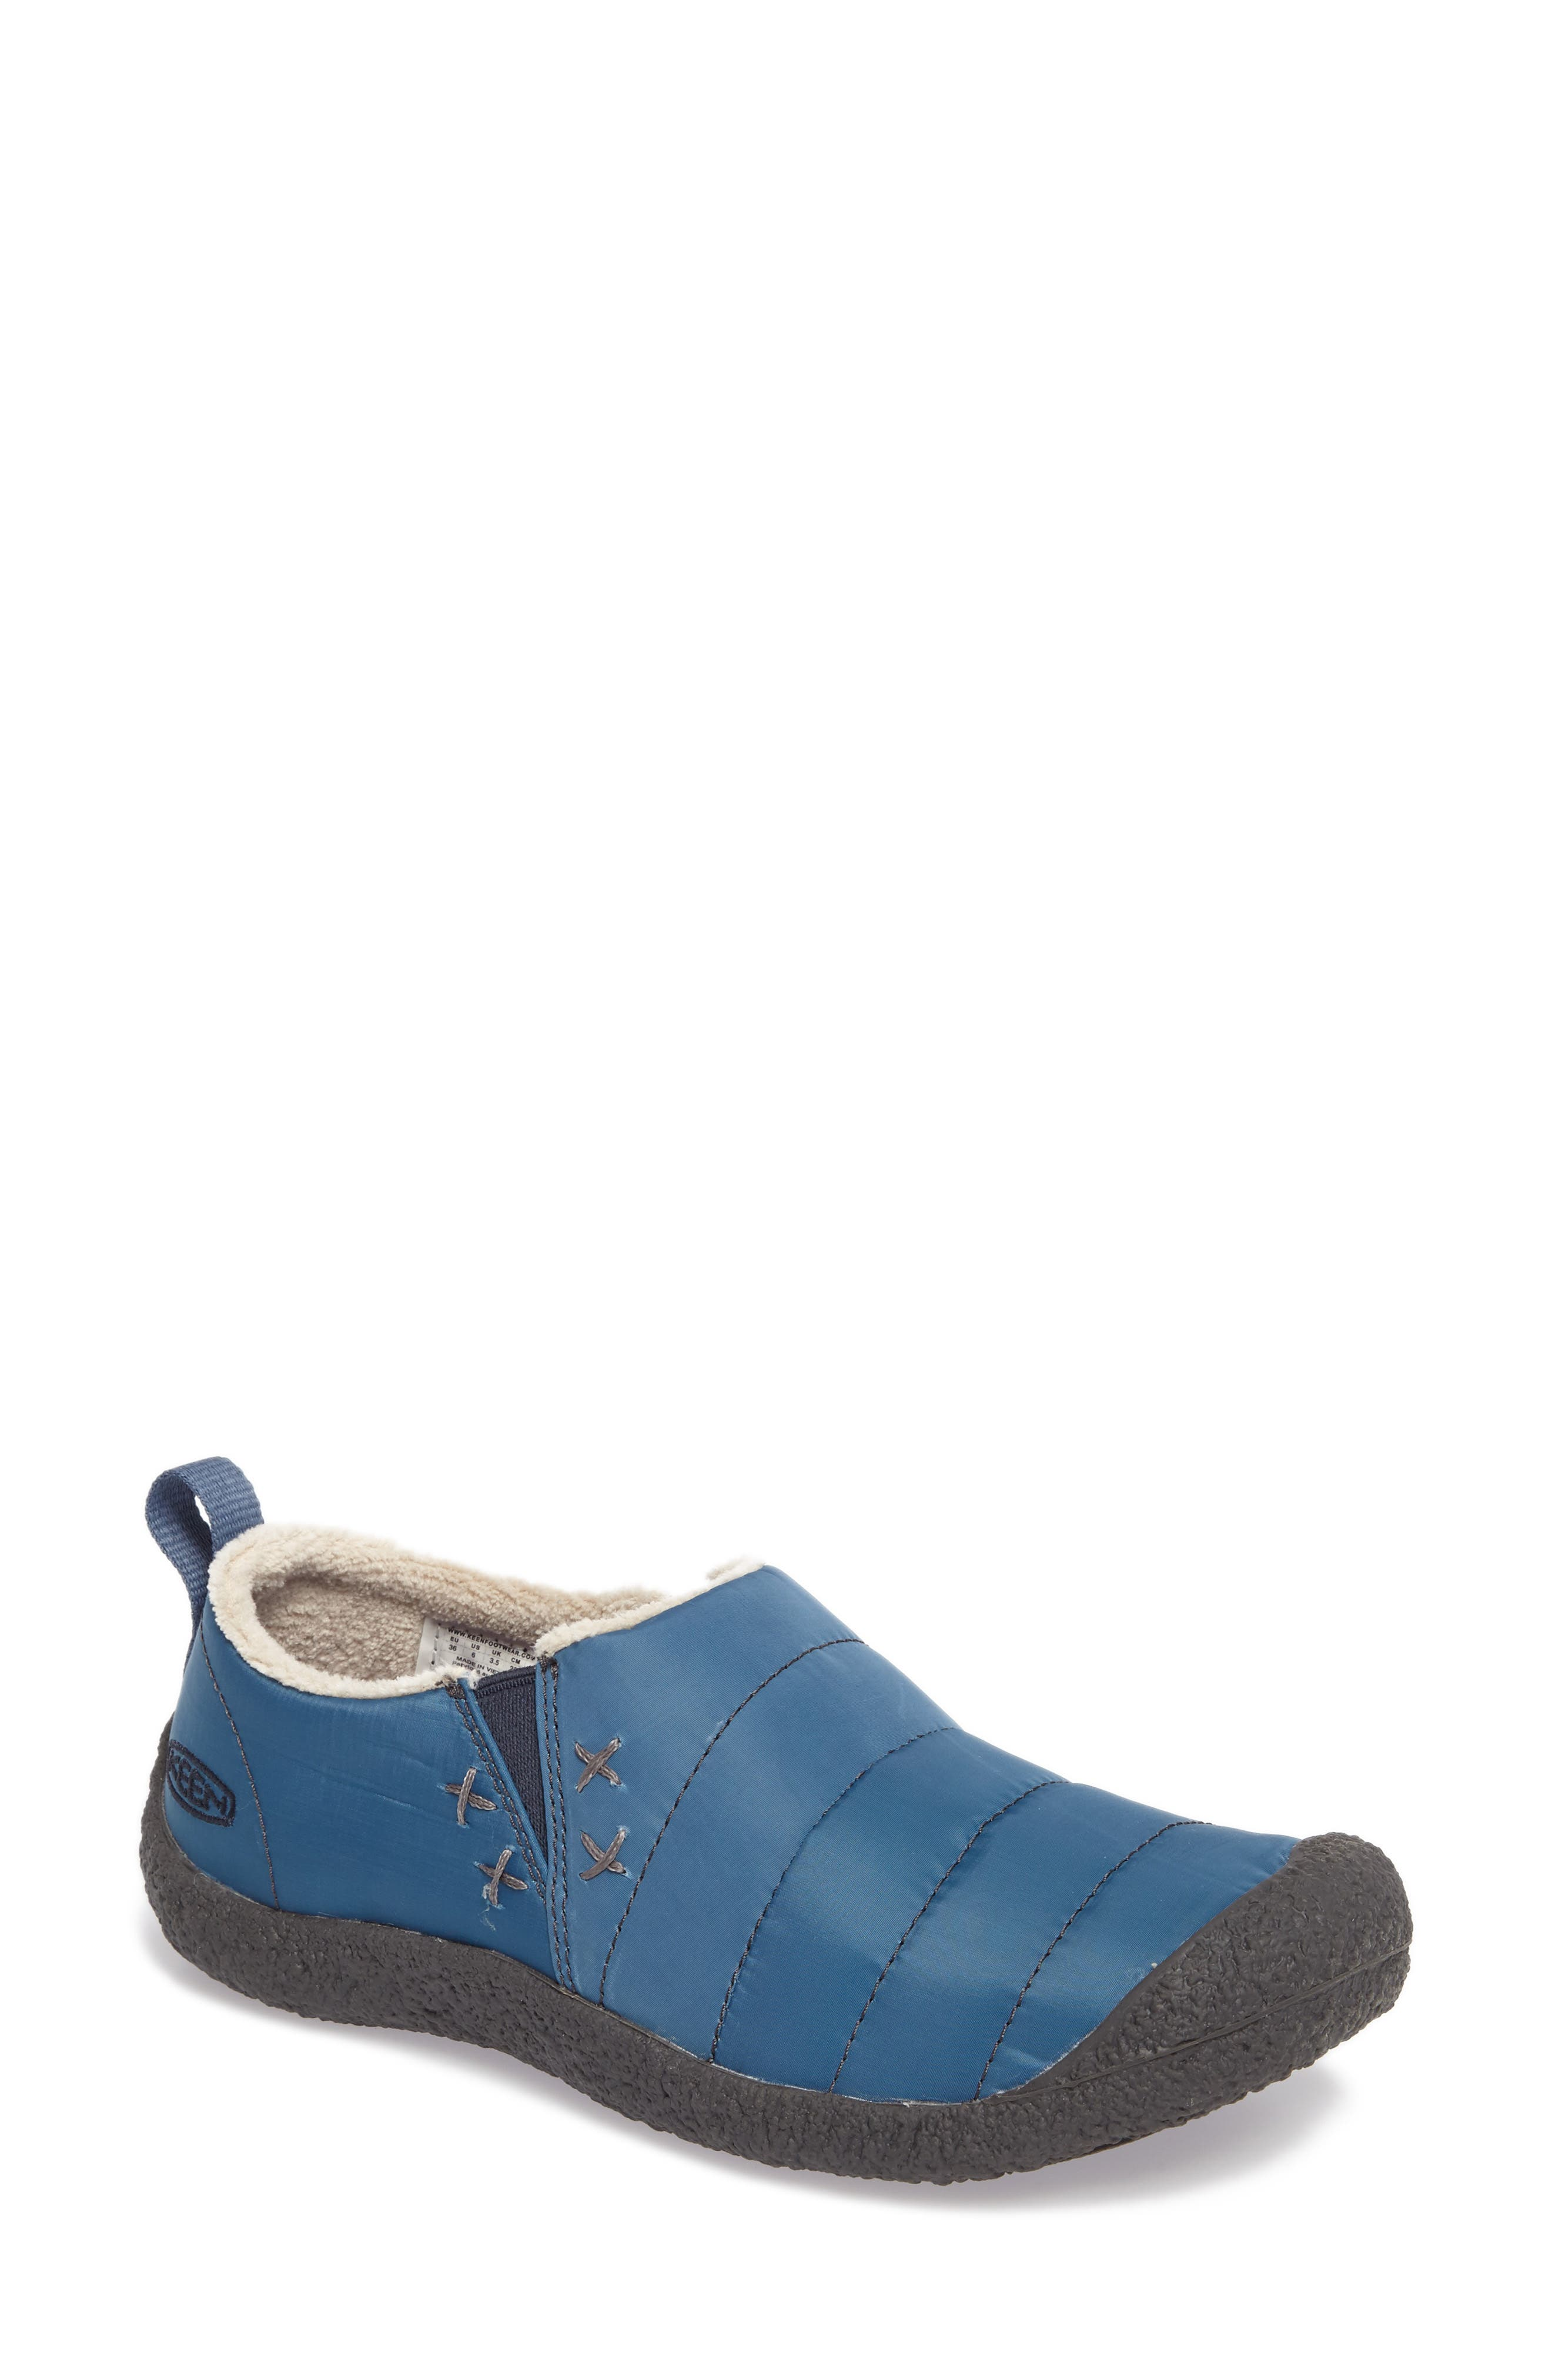 Howser II Water-Resistant Round Toe Clog,                         Main,                         color, 400